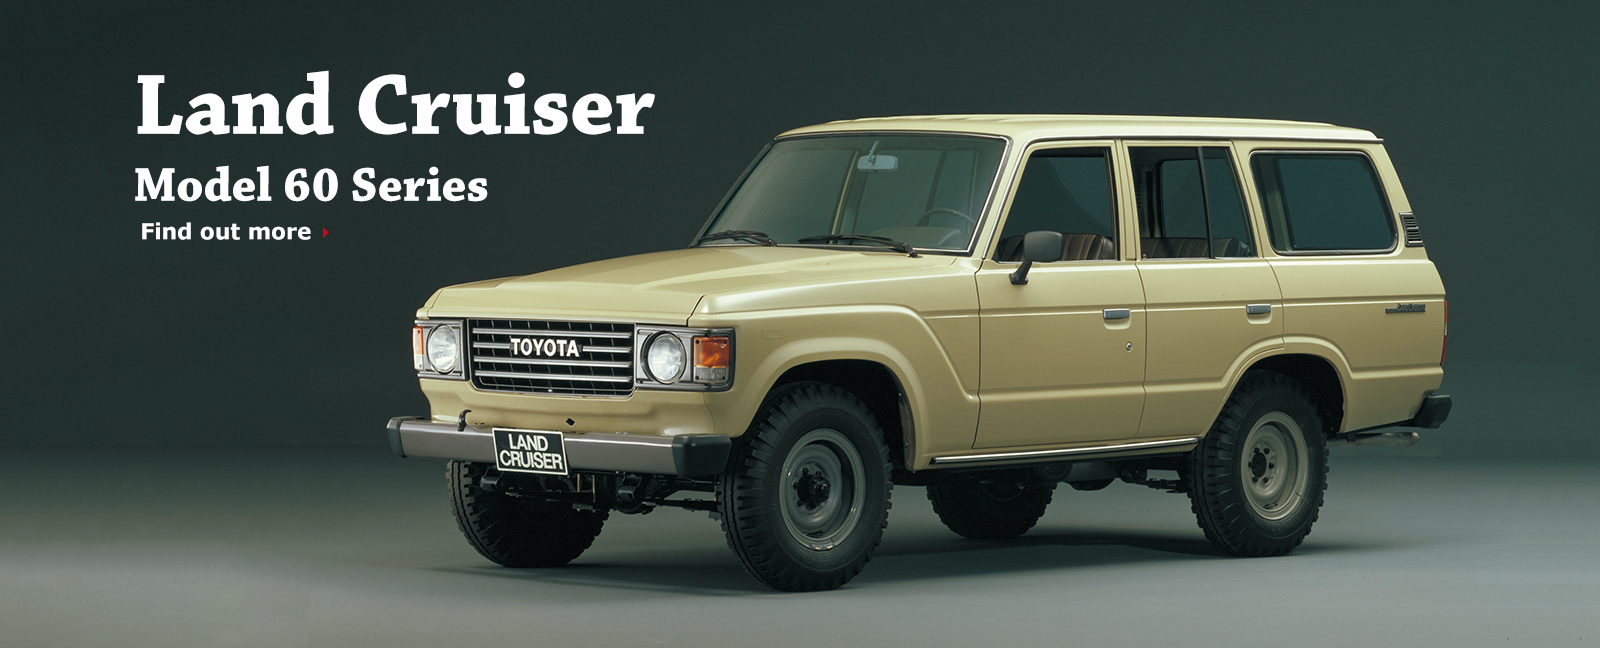 Toyota Land Cruiser #22